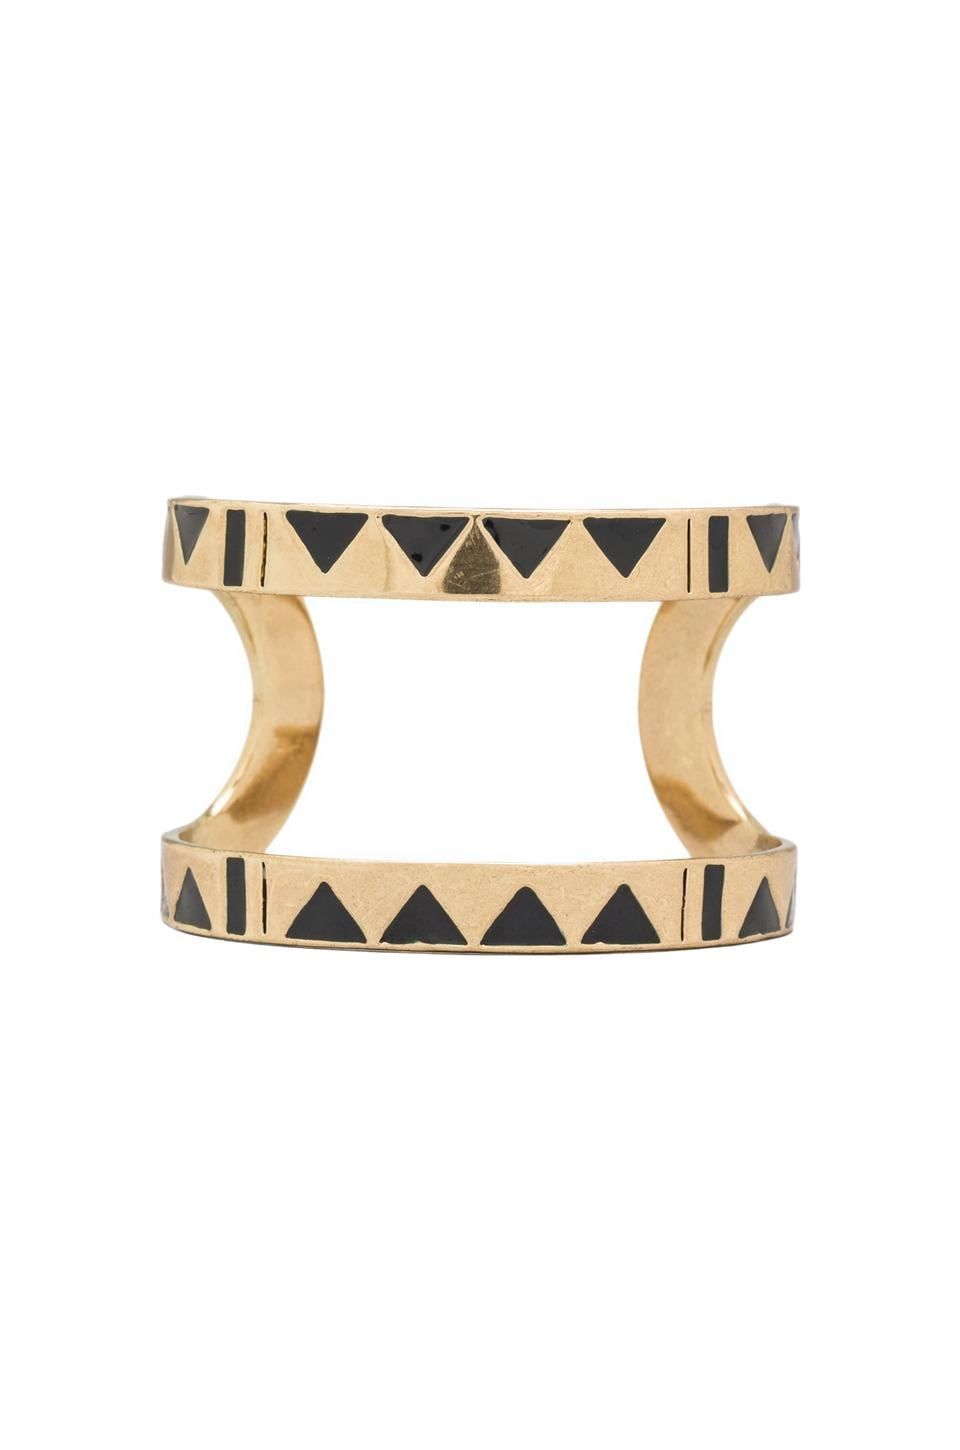 House of Harlow 1960 House of Harlow Three Caves Cuff in Gold Tone Navy